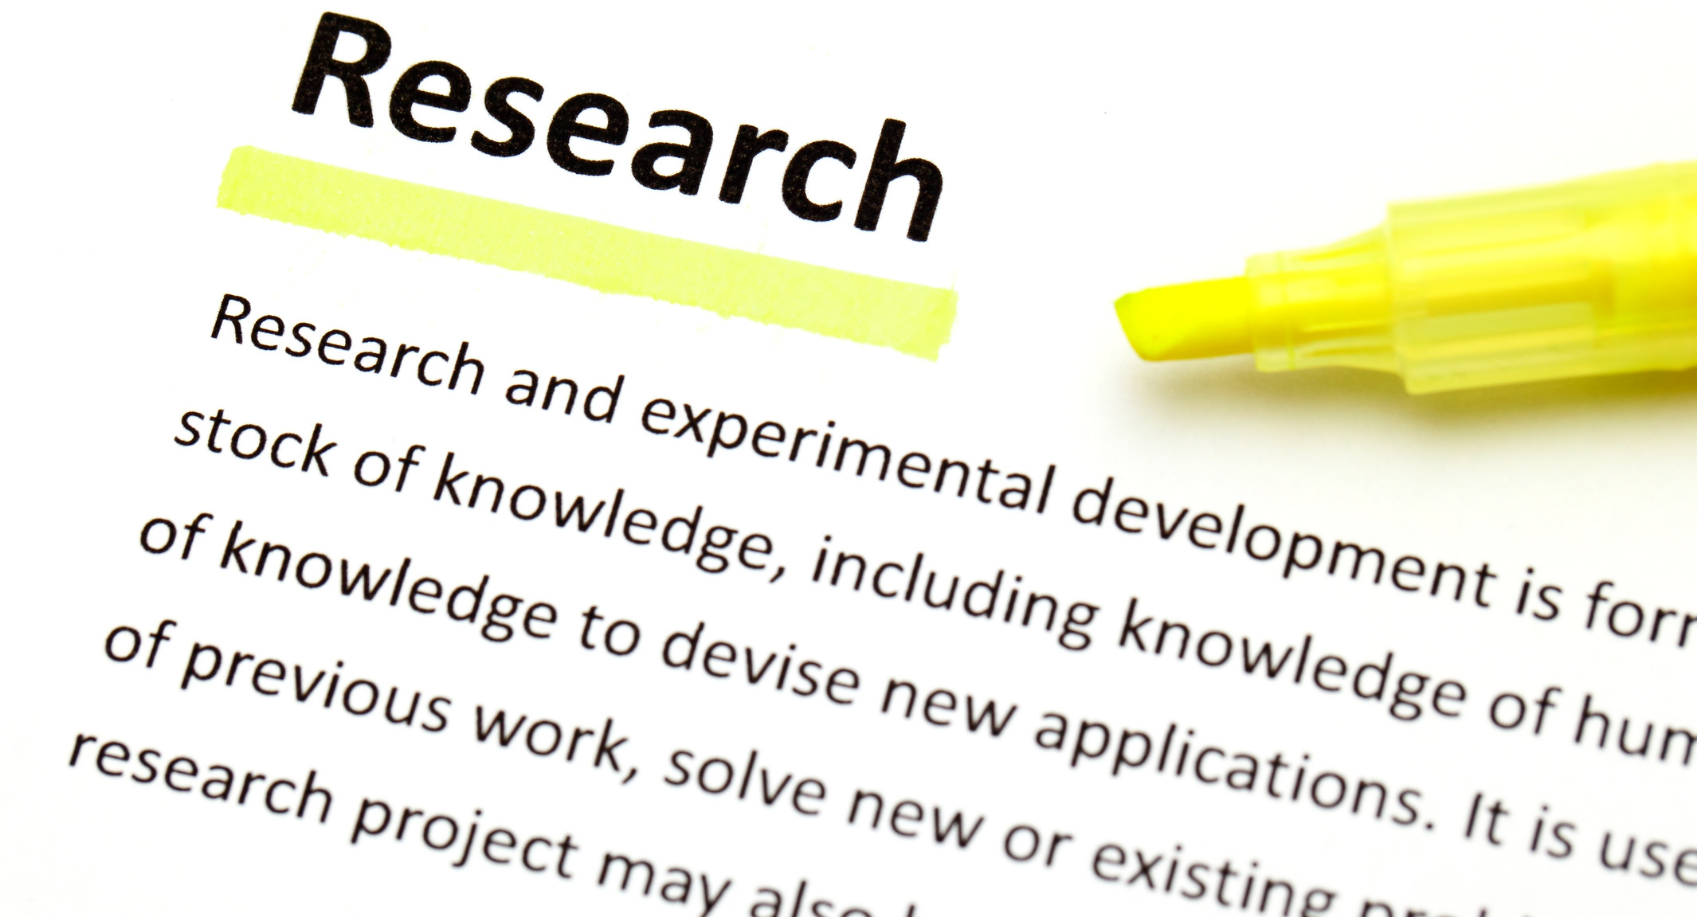 70 Best Ideas for Research Paper topics in 2021